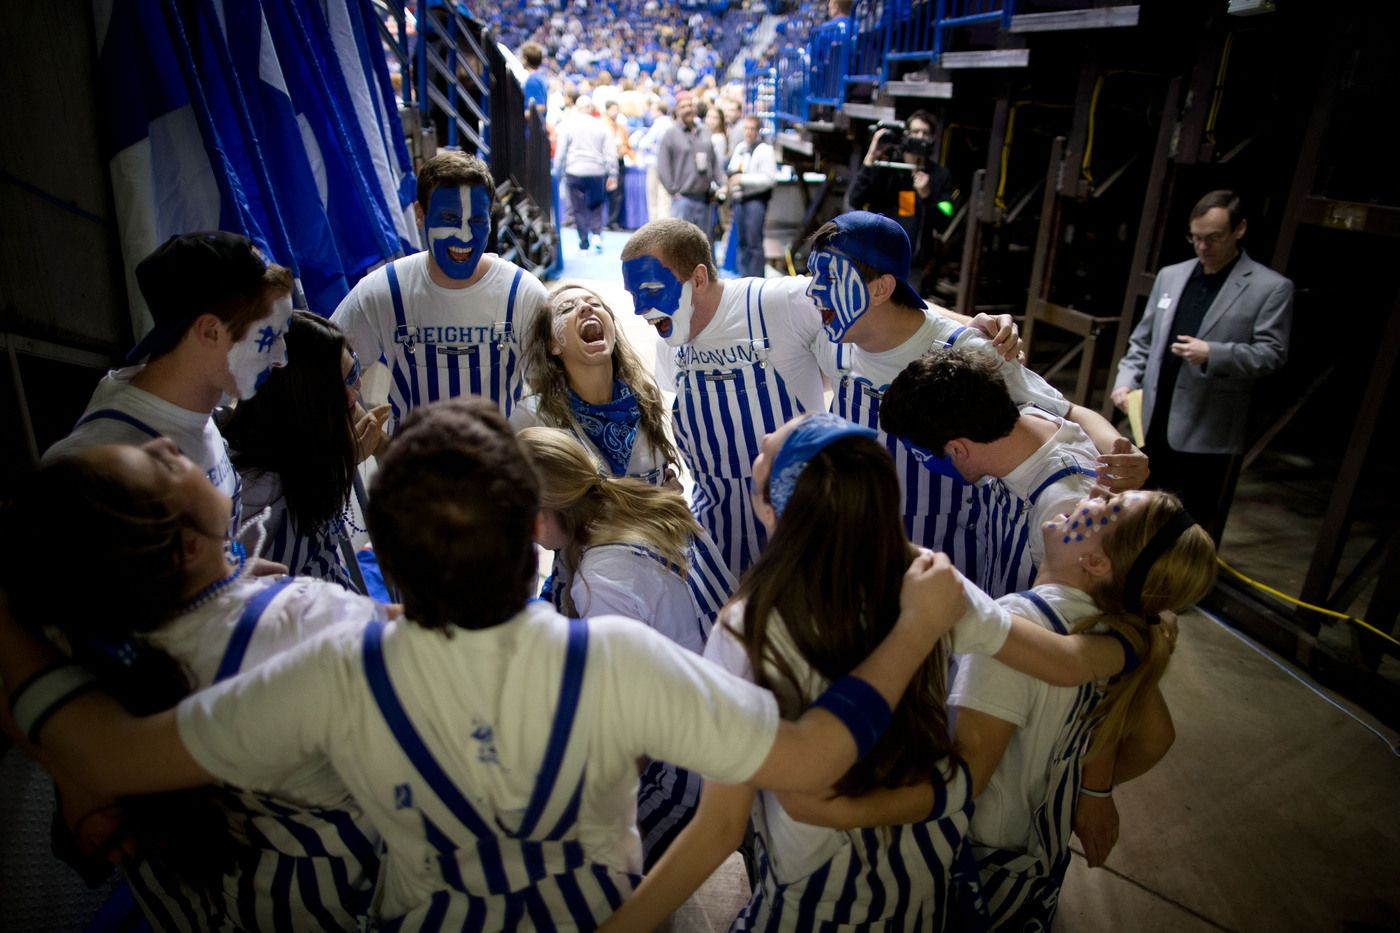 The Blue Crew huddles up before the game and prepares to